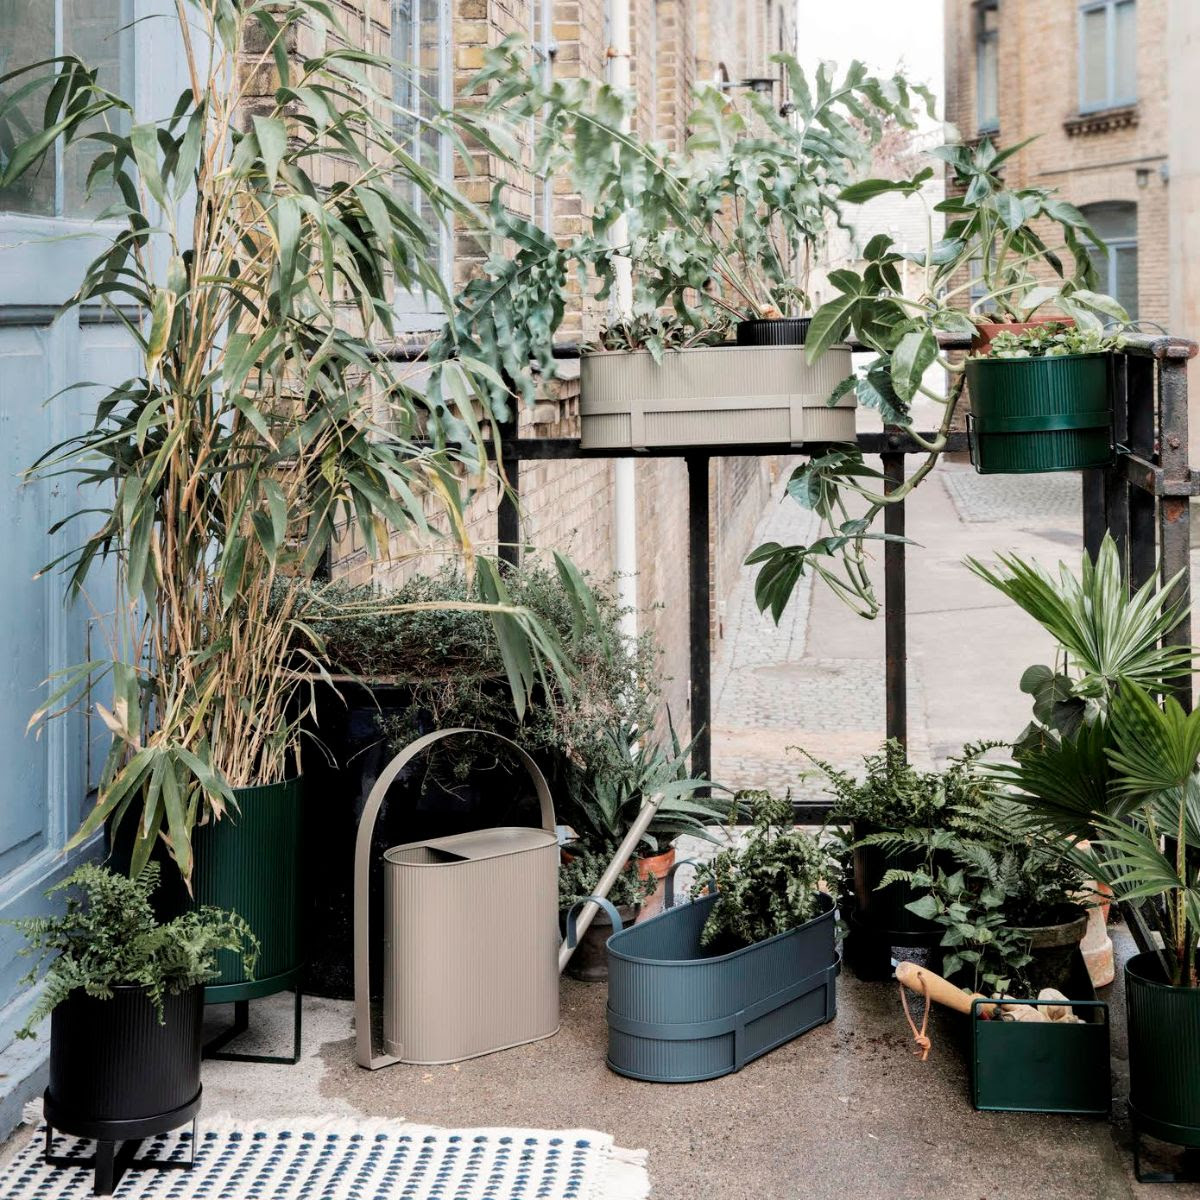 Use Ferm Living planters, like this one from   Kin  , seasonally (basically don't leave them outside over winter)